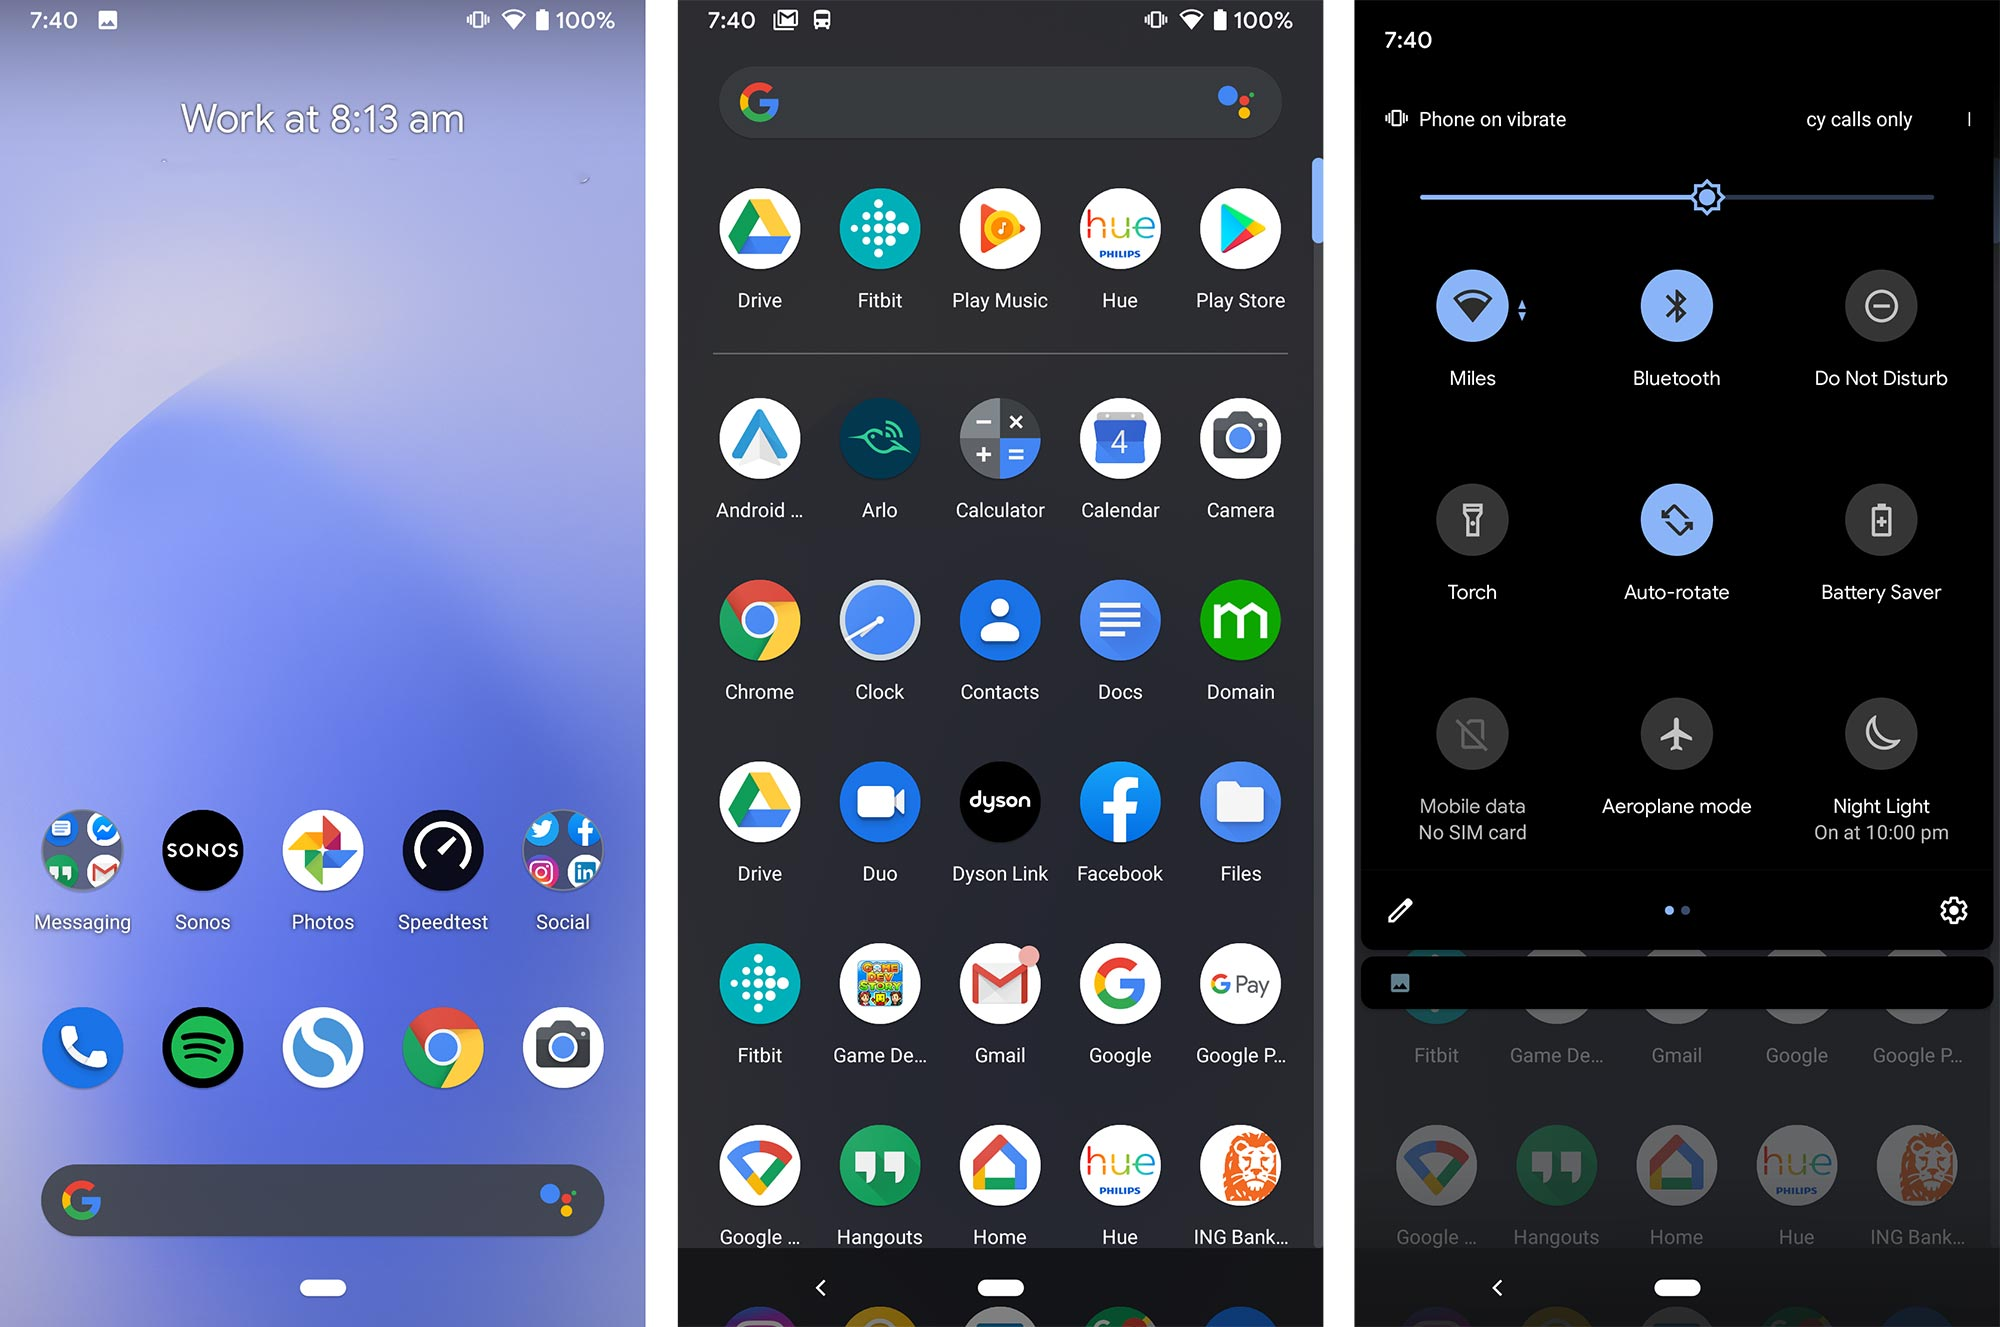 Android 10 goes live today, released to Pixel first – Pickr